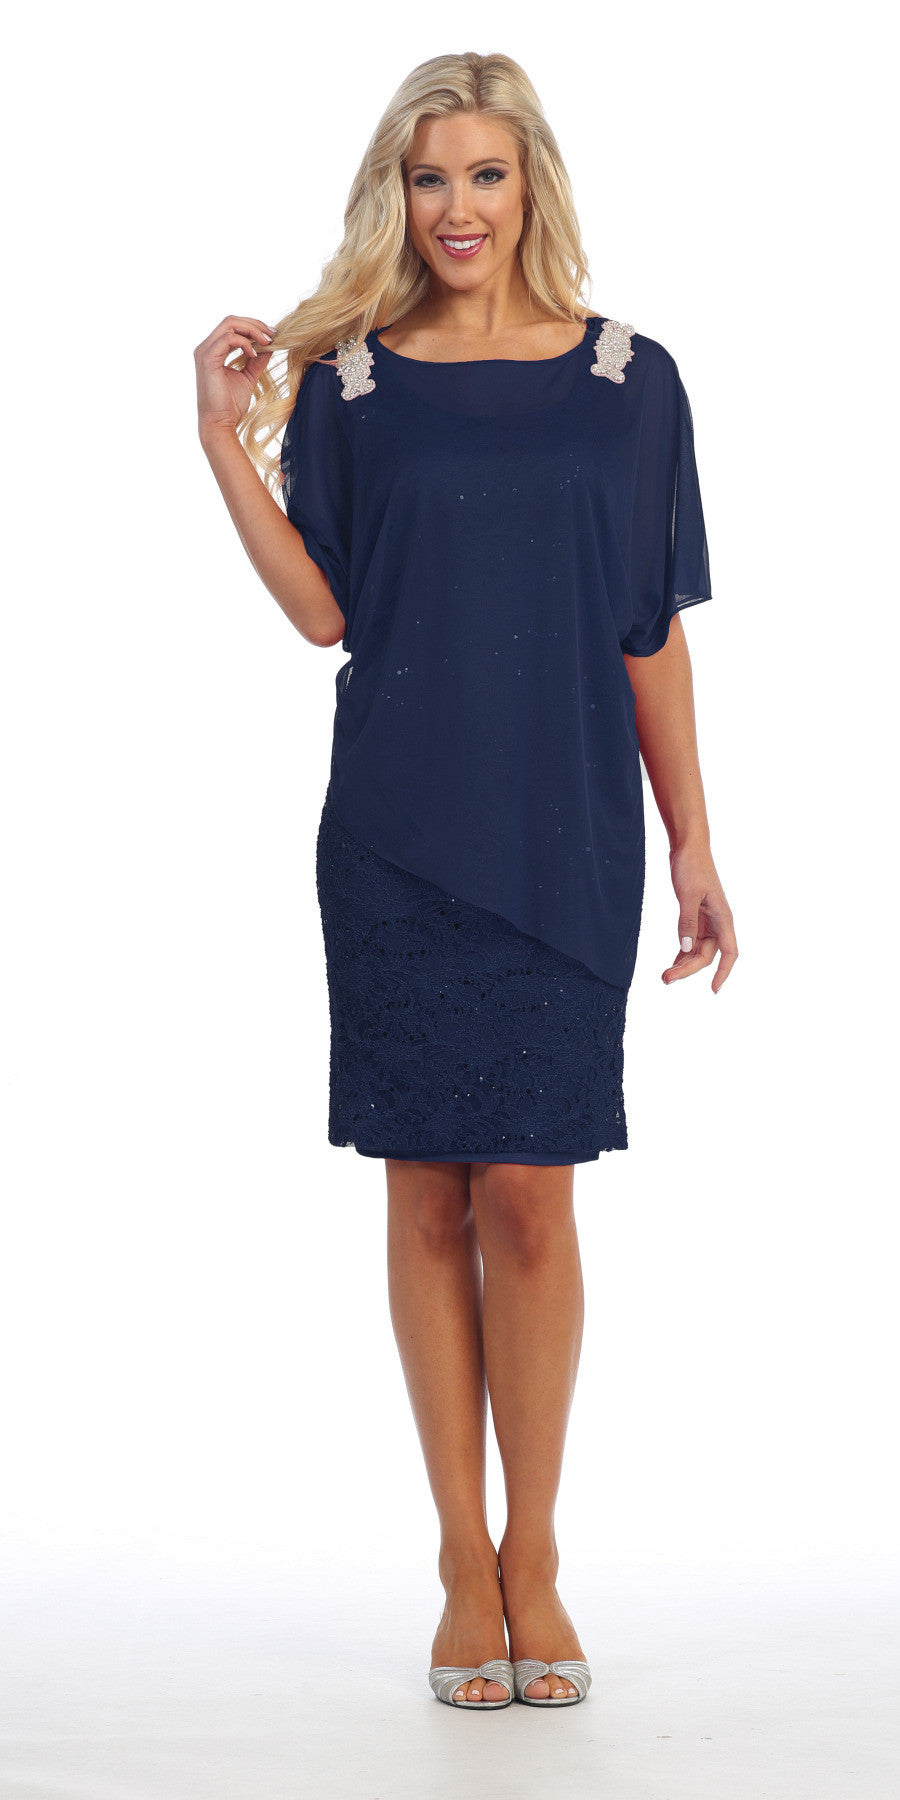 Sheer Batwing Sleeved Lace Navy Blue Sheath Cocktail Dress